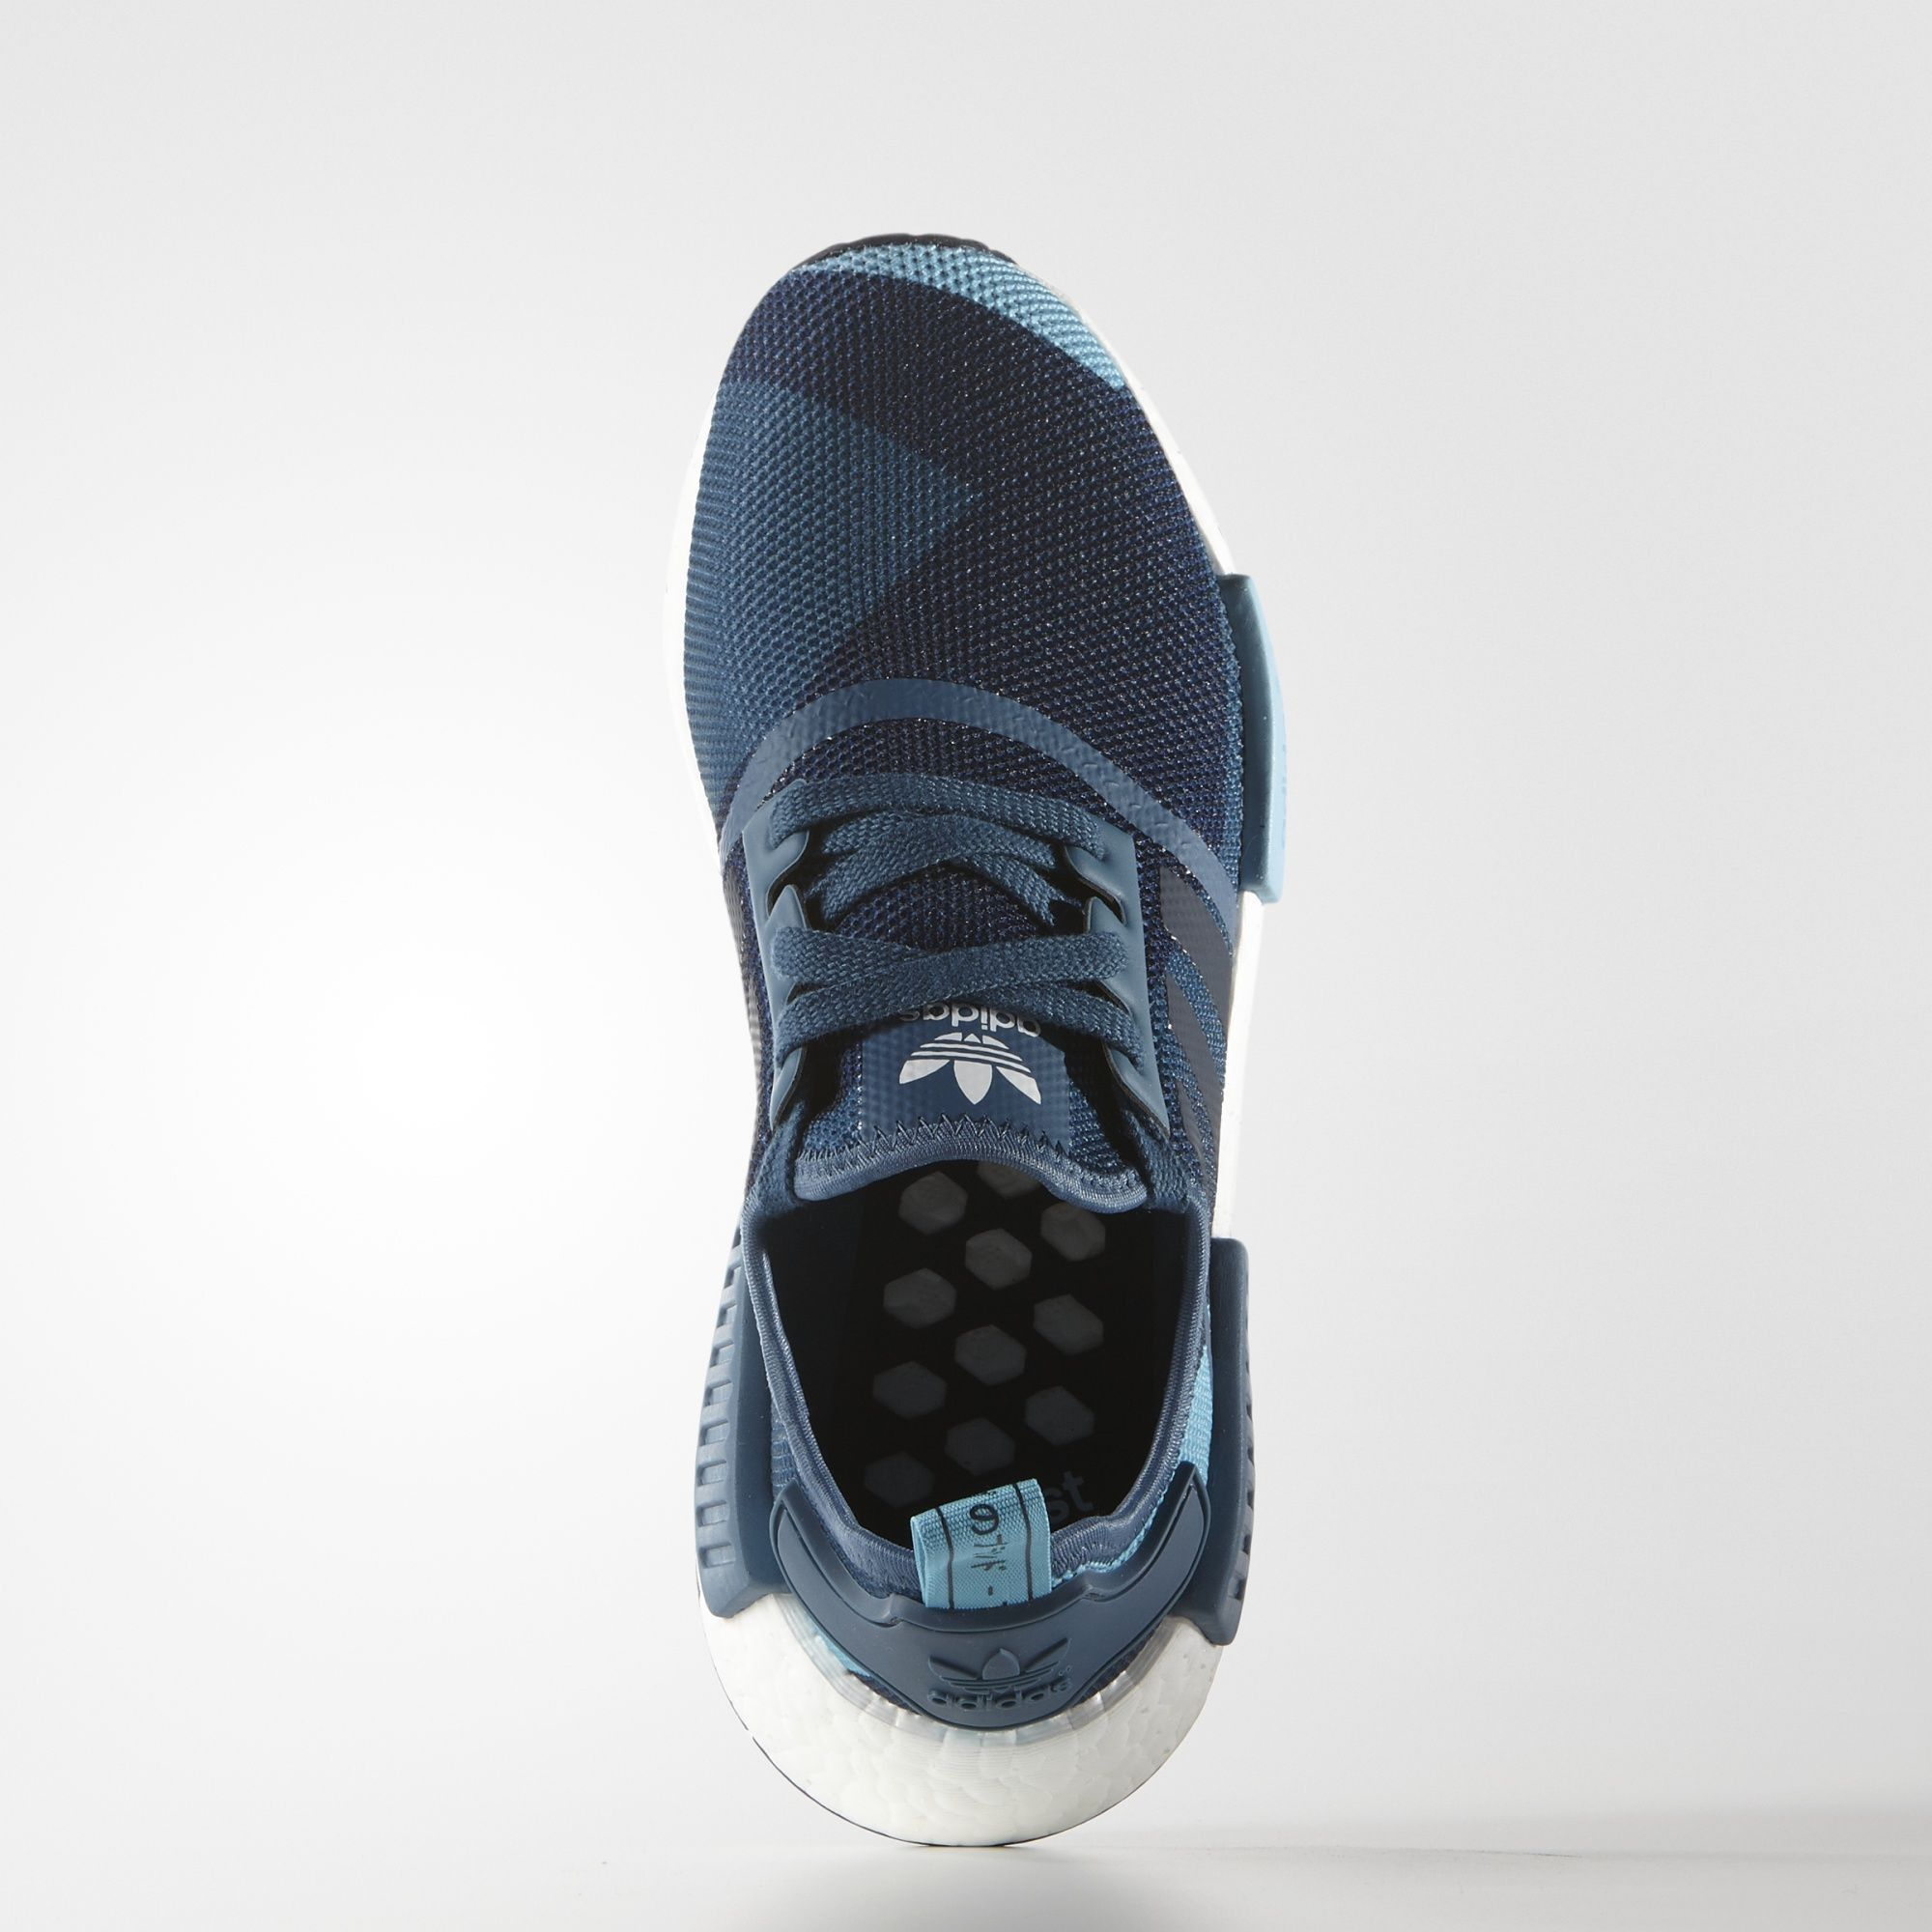 Adidas Nmd R1 Donne Blanch Bluecollegiate Navy0 In Guardia